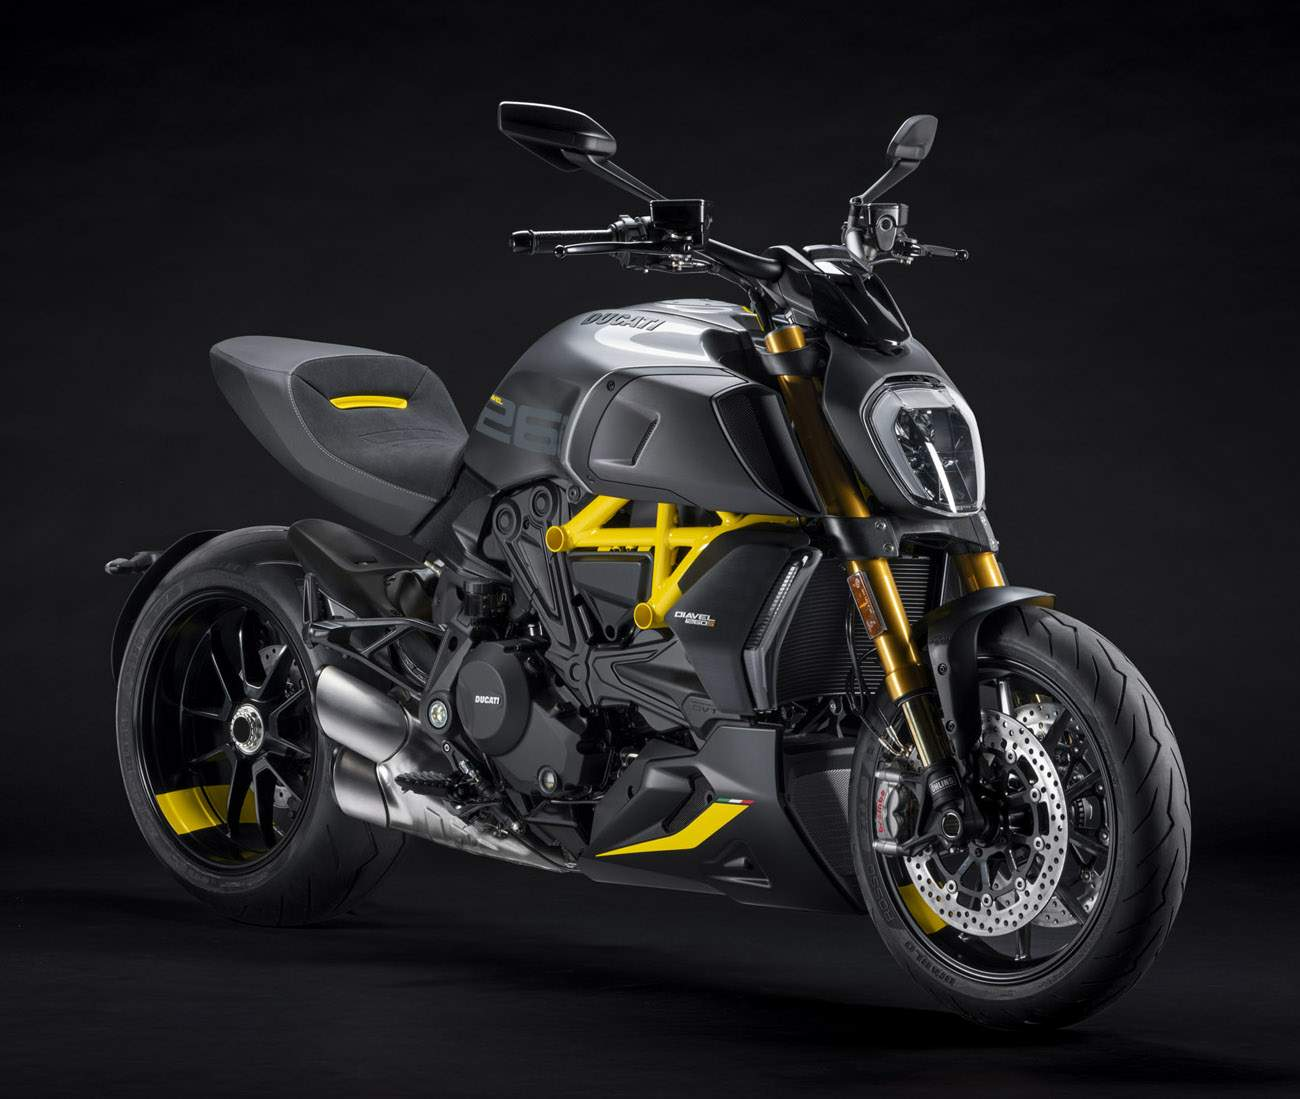 Ducati Diavel 1260 S Black and Steel technical specifications